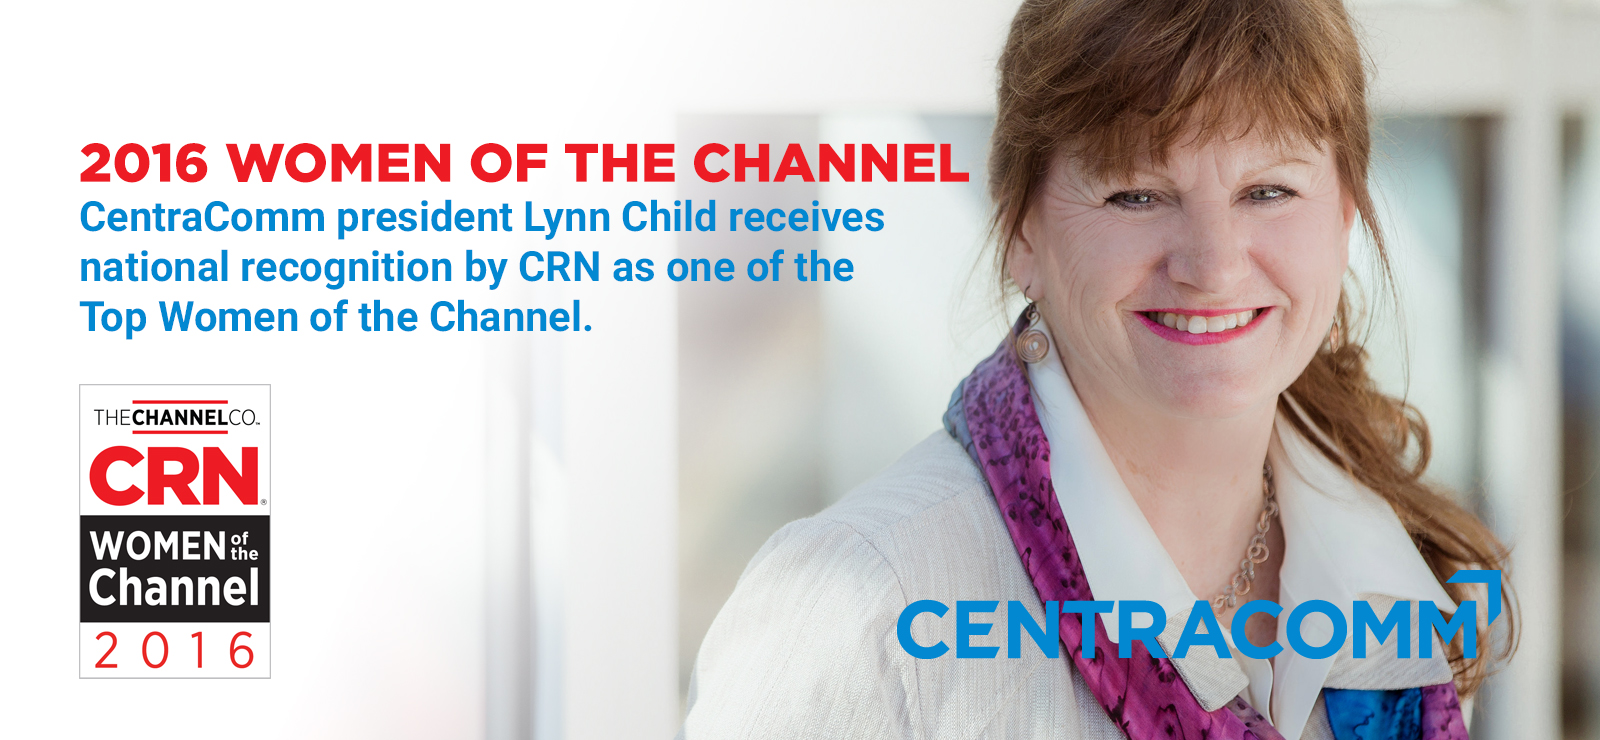 how to get a crn for child